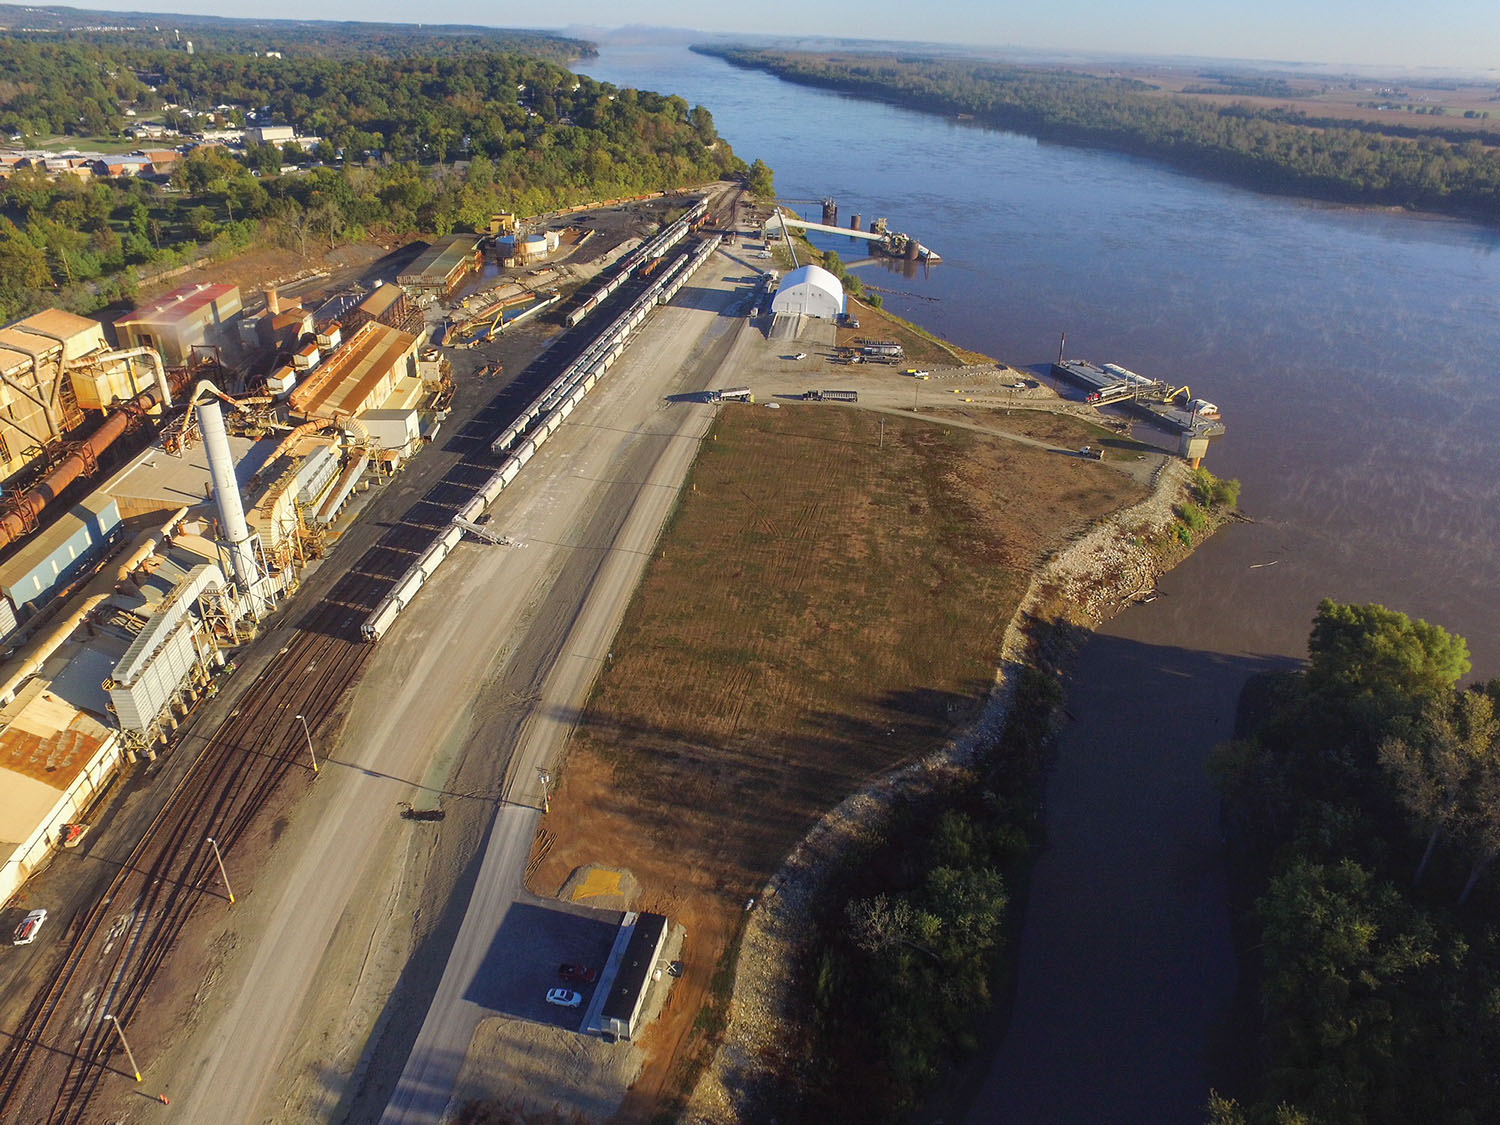 A former lead port at Herculaneum, Mo., has found new success shipping frac sand and bulk commodities. (Photo courtesy of Riverview Commerce Park Terminal)